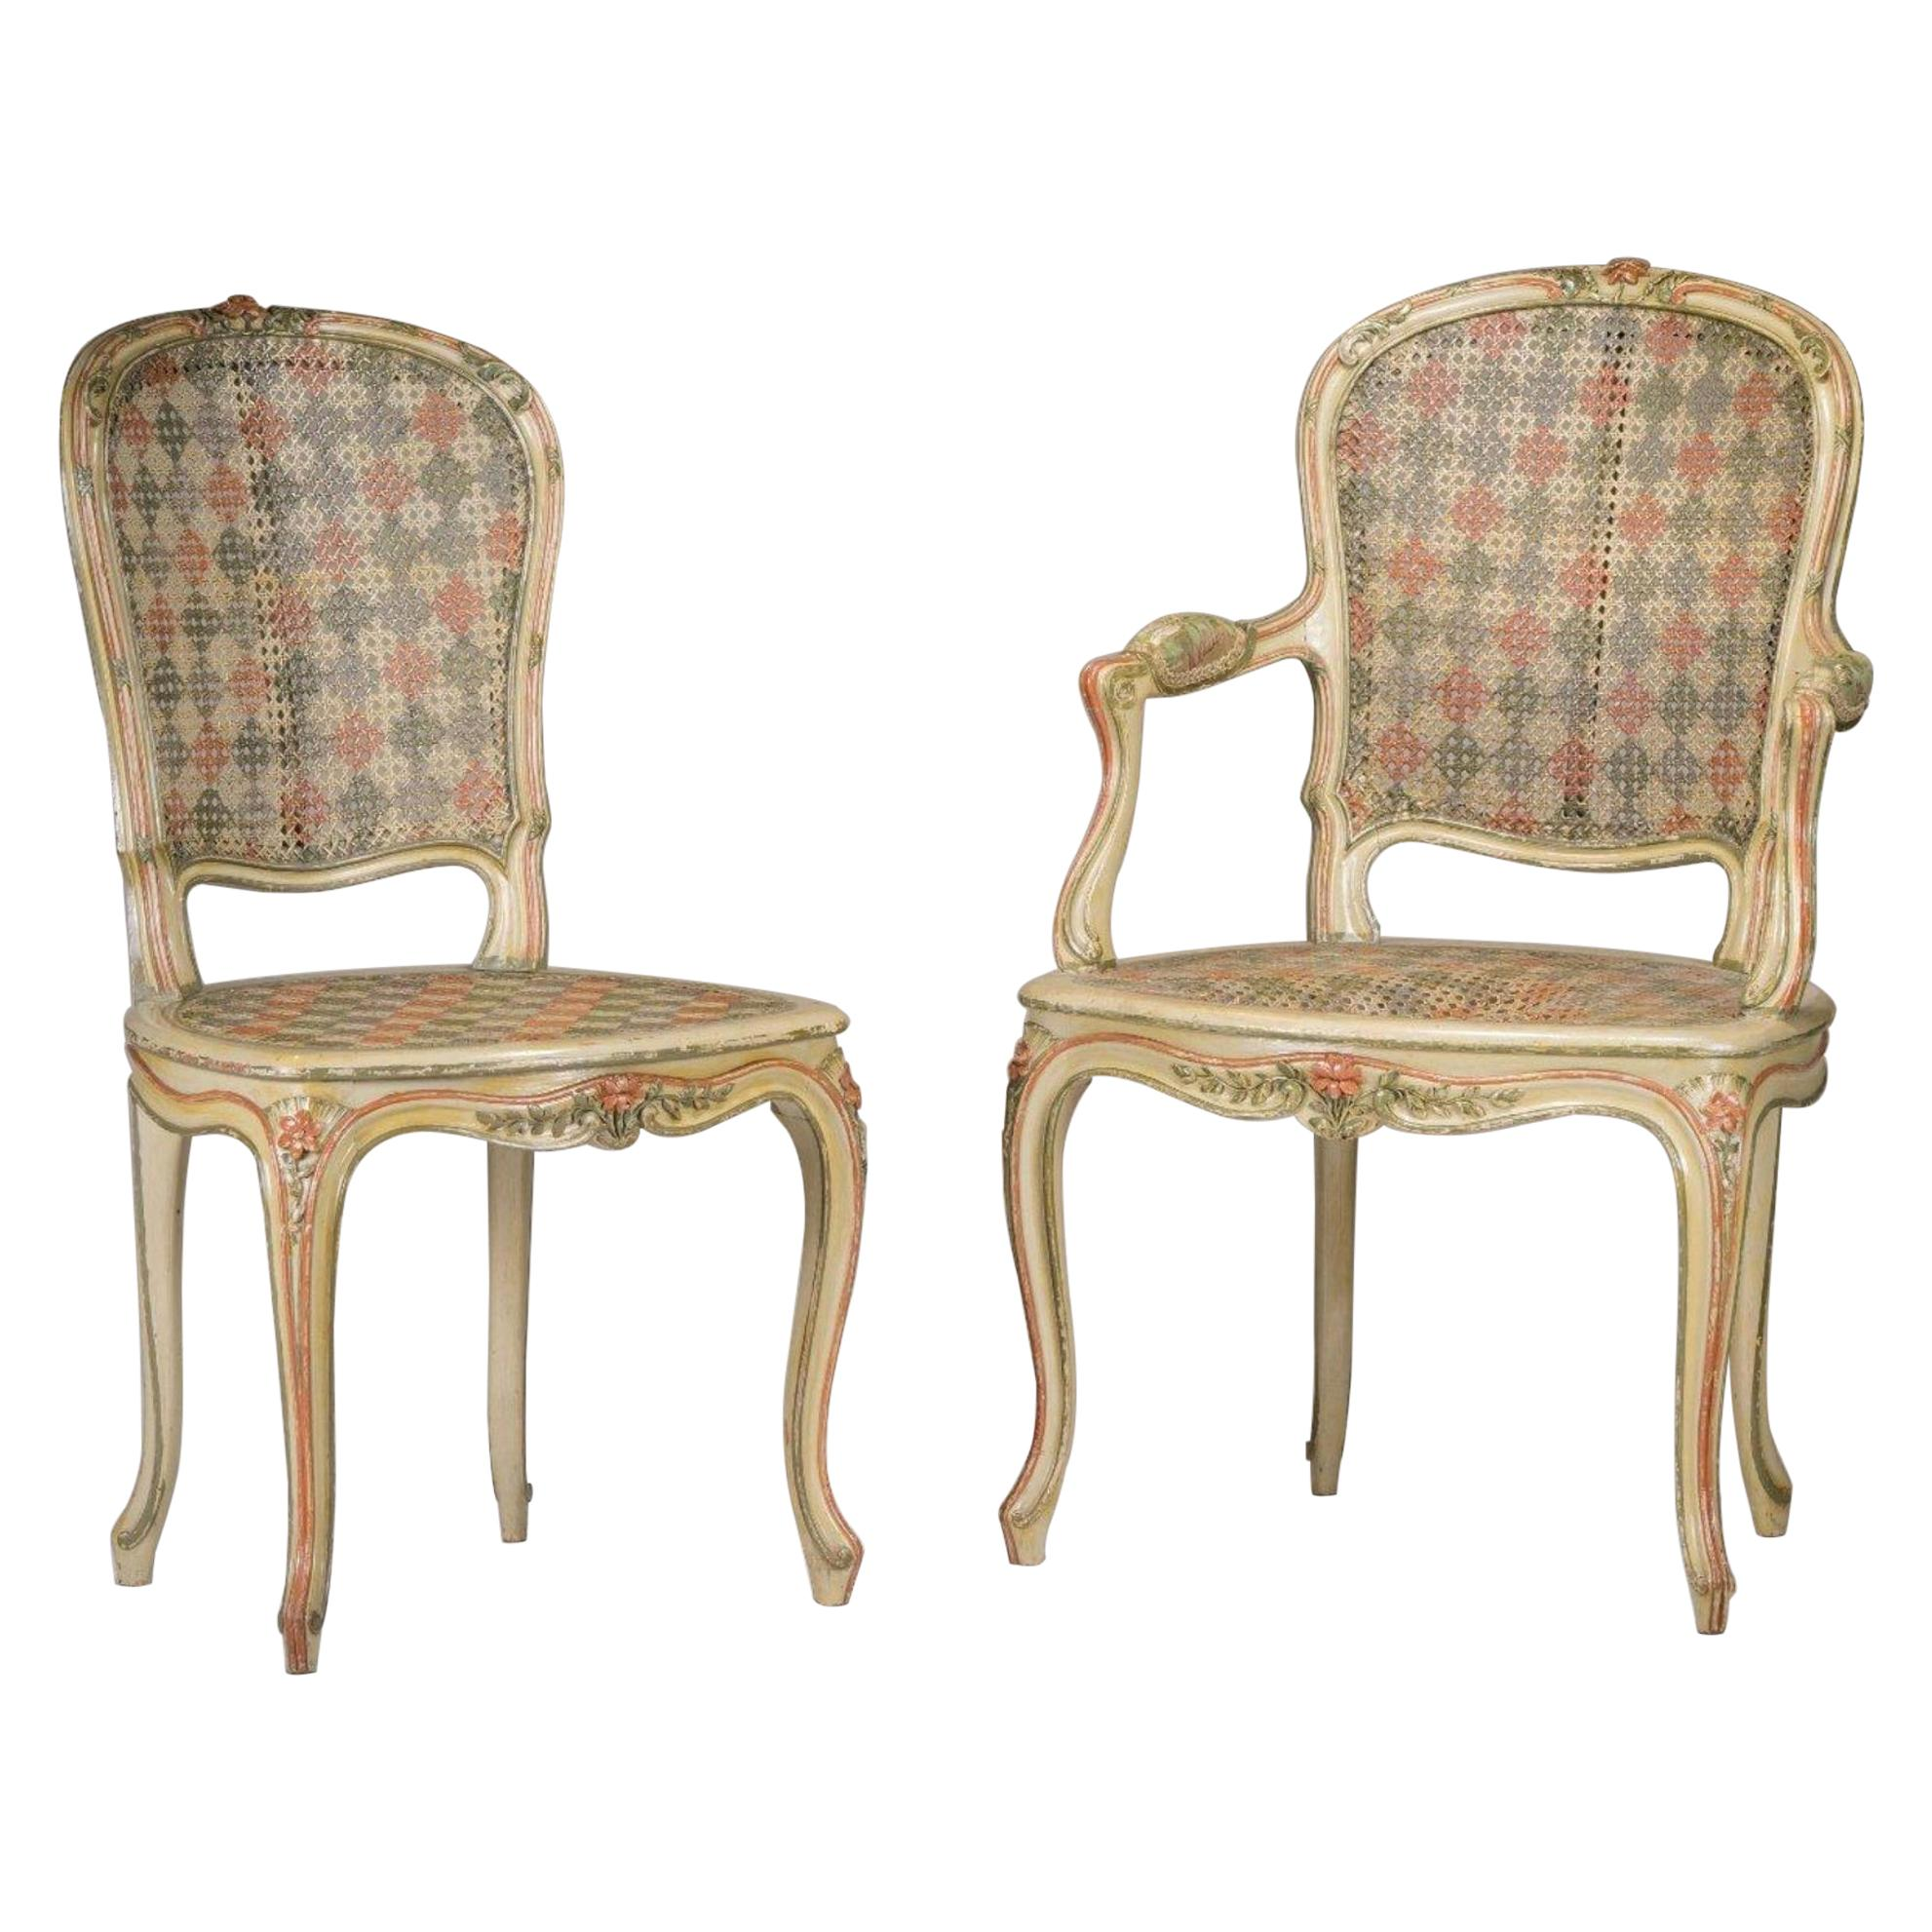 19th Century French Hand Carved Set of Chair and Armchair in Louis XV Style